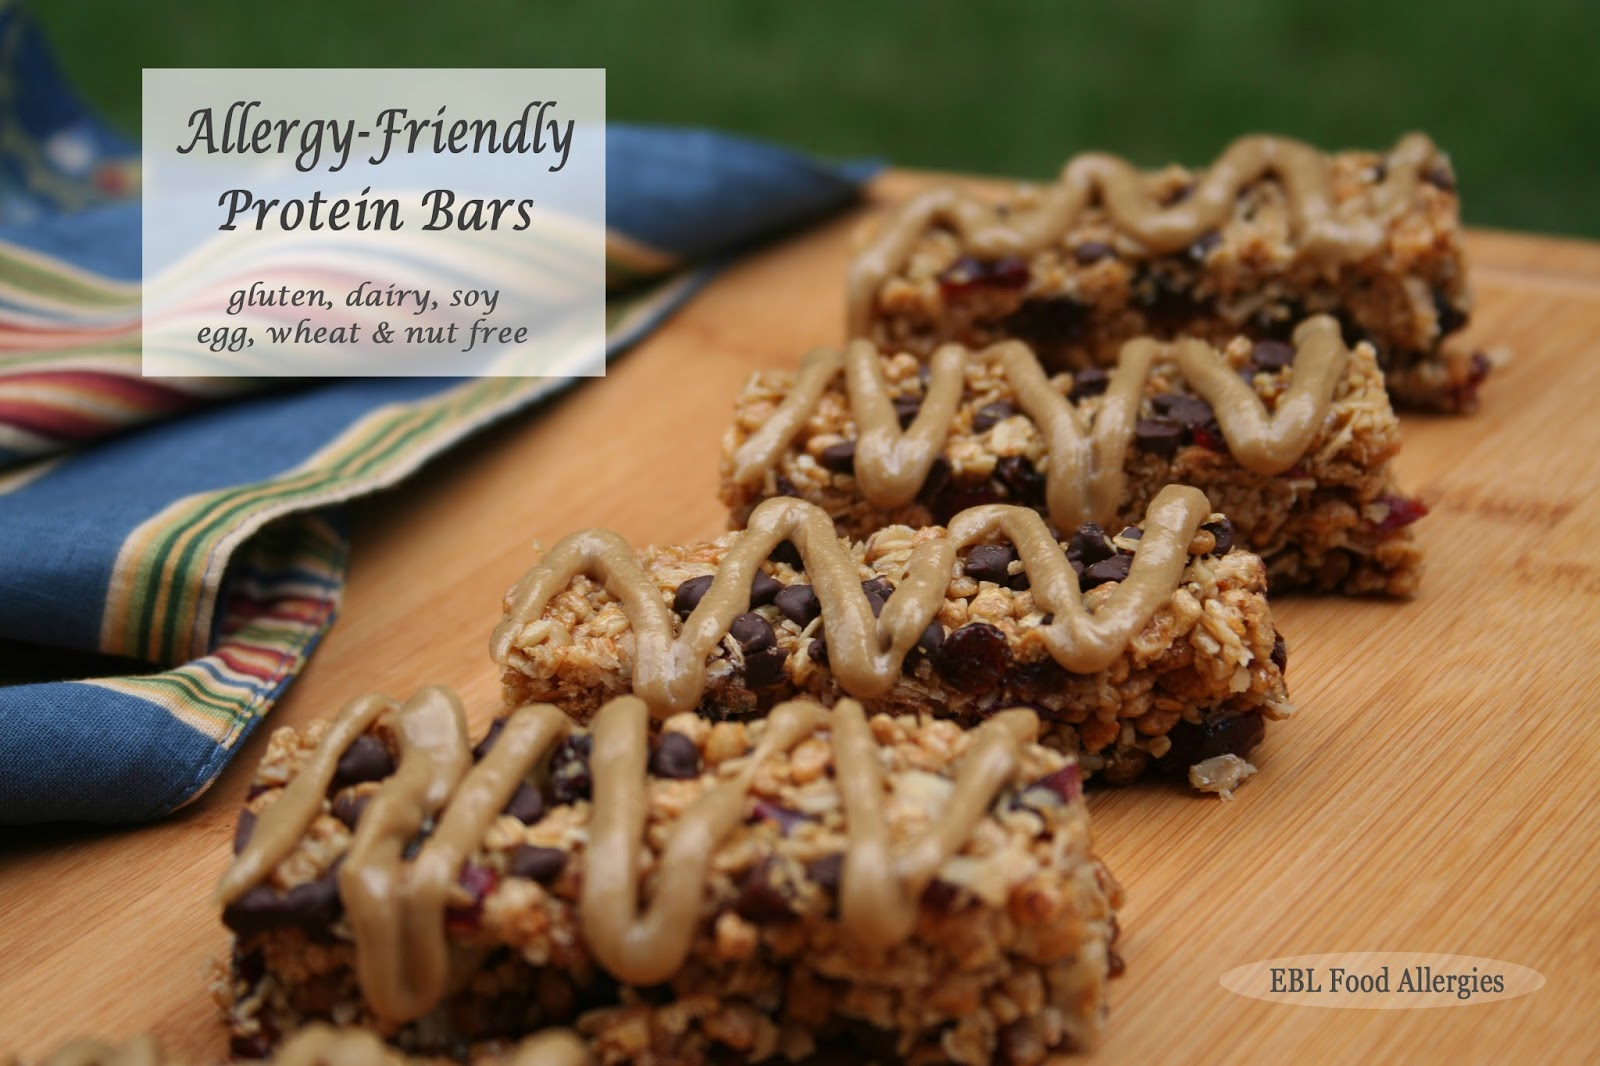 Chewy allergy friendly protein bar recipe ebl food allergies these look sooo good i need to make them soon chewy allergy friendly forumfinder Image collections